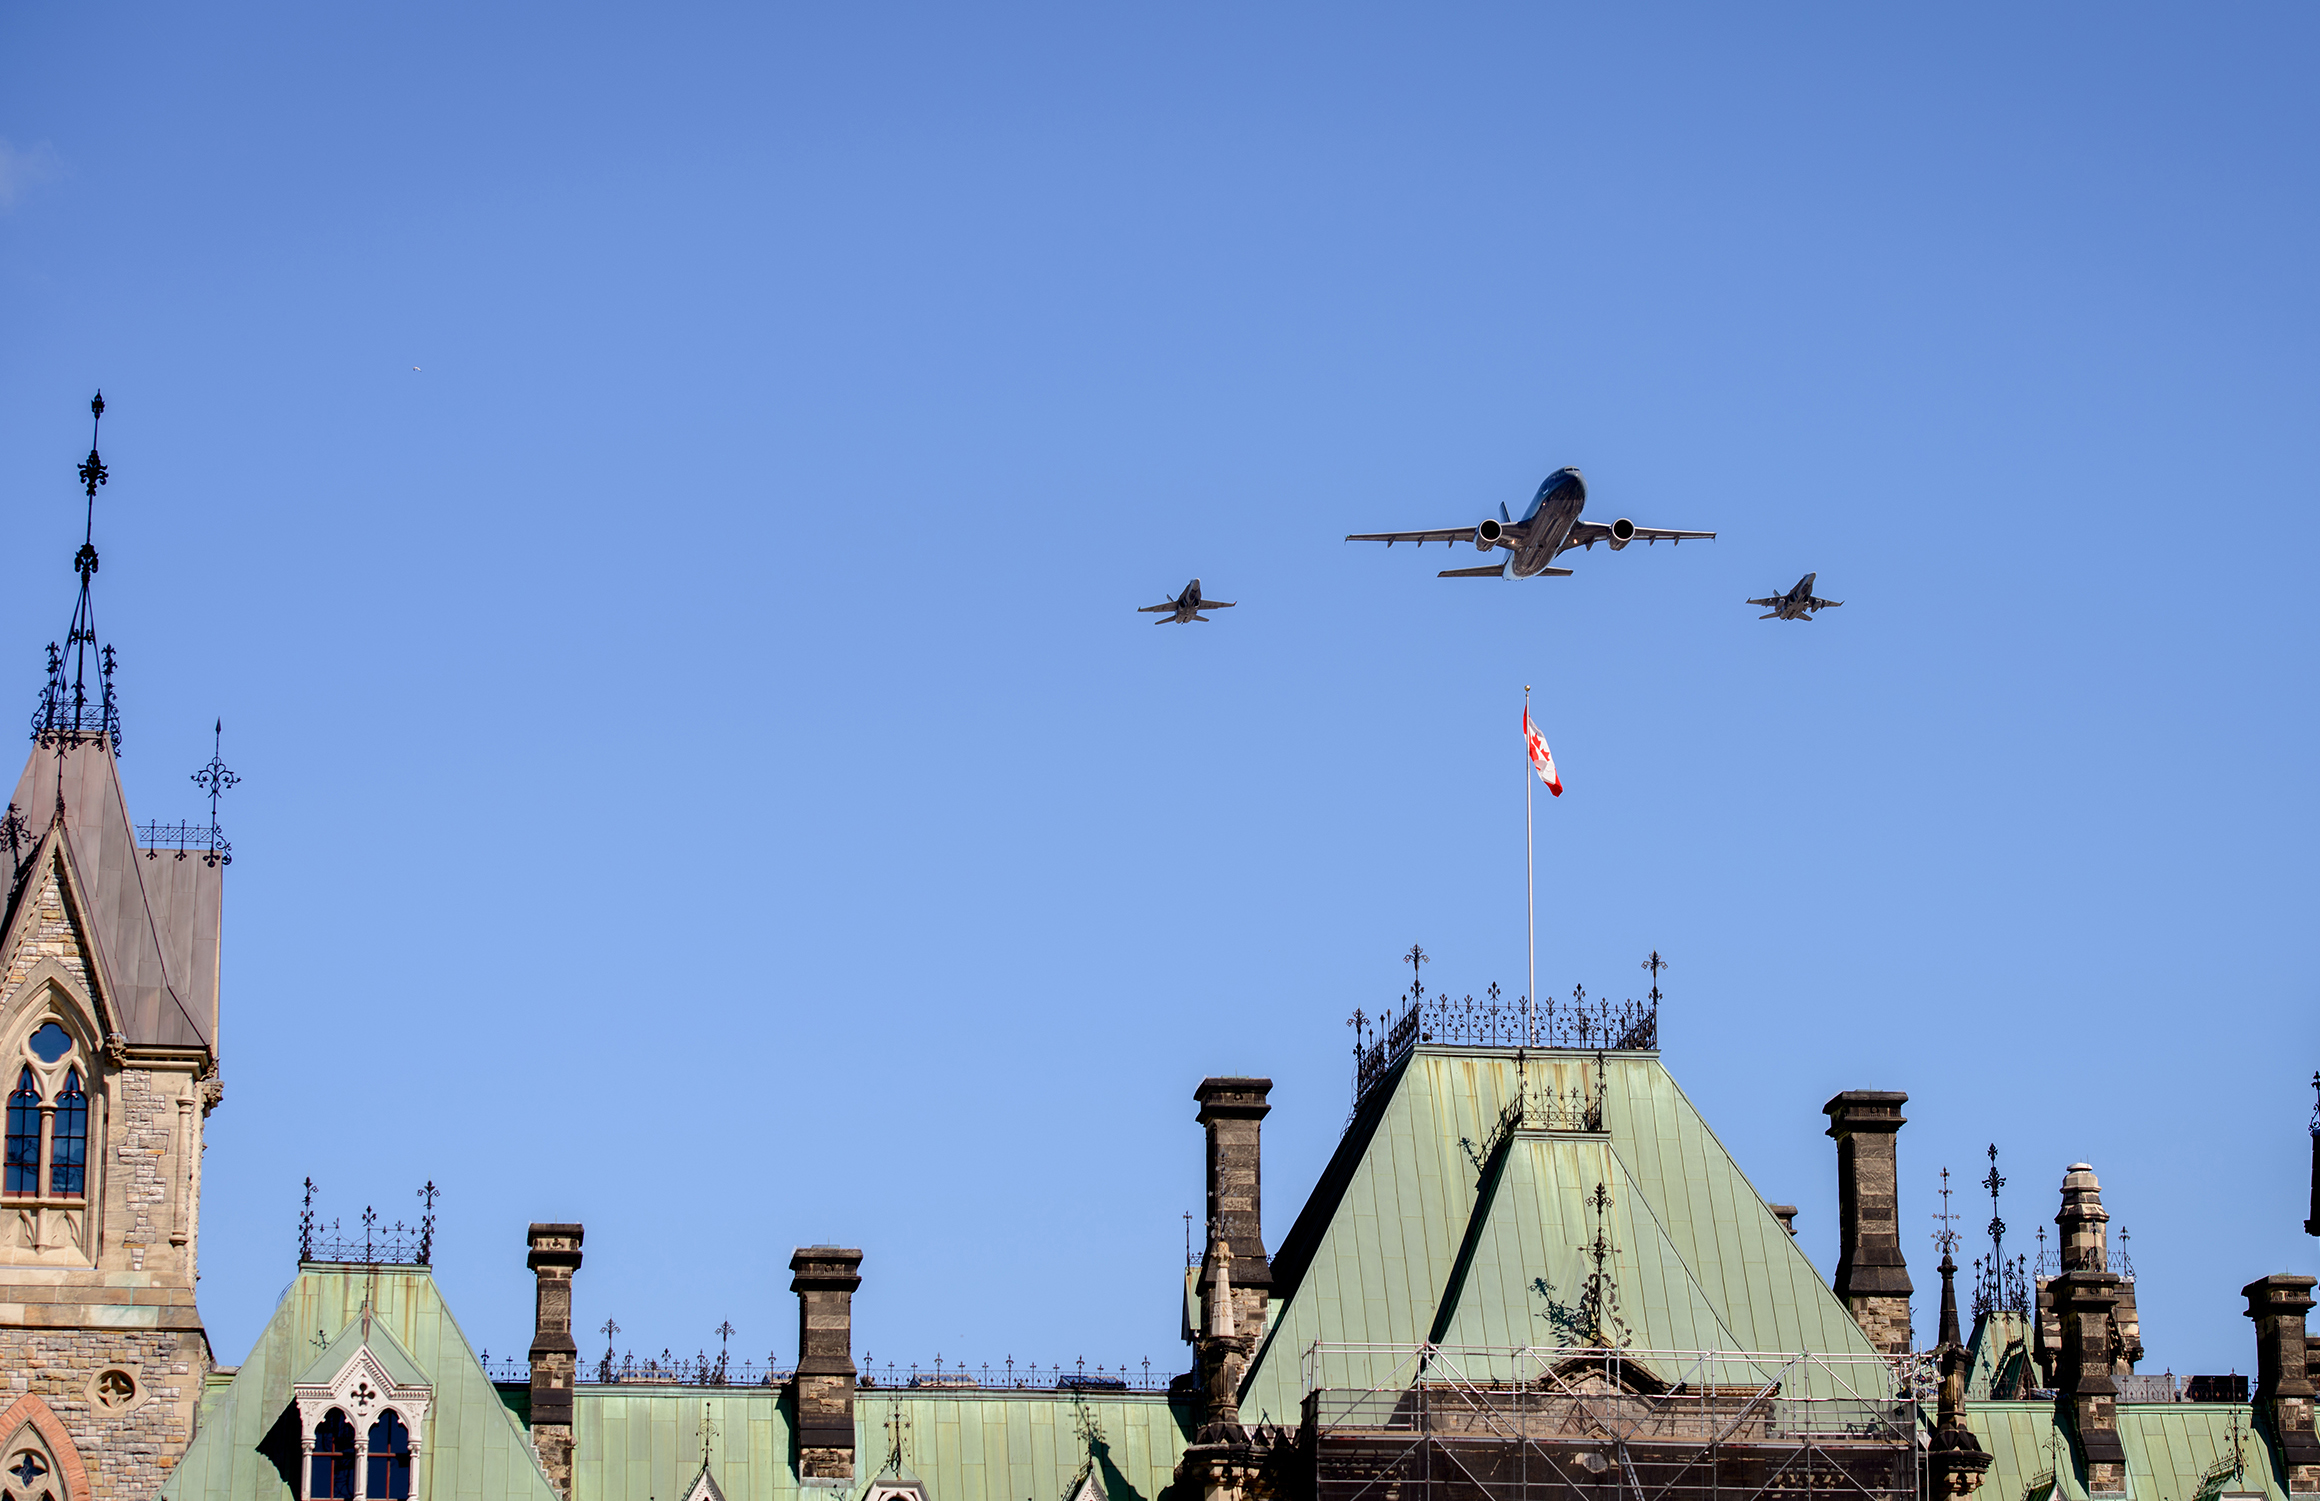 A CC-150 Polaris, flanked by two CF-188 Hornets, flies over Parliament Hill during the national ceremony held September 20, 2015, to mark the 75th anniversary of the Battle of Britain. PHOTO: Master Corporal Daniel Merrell